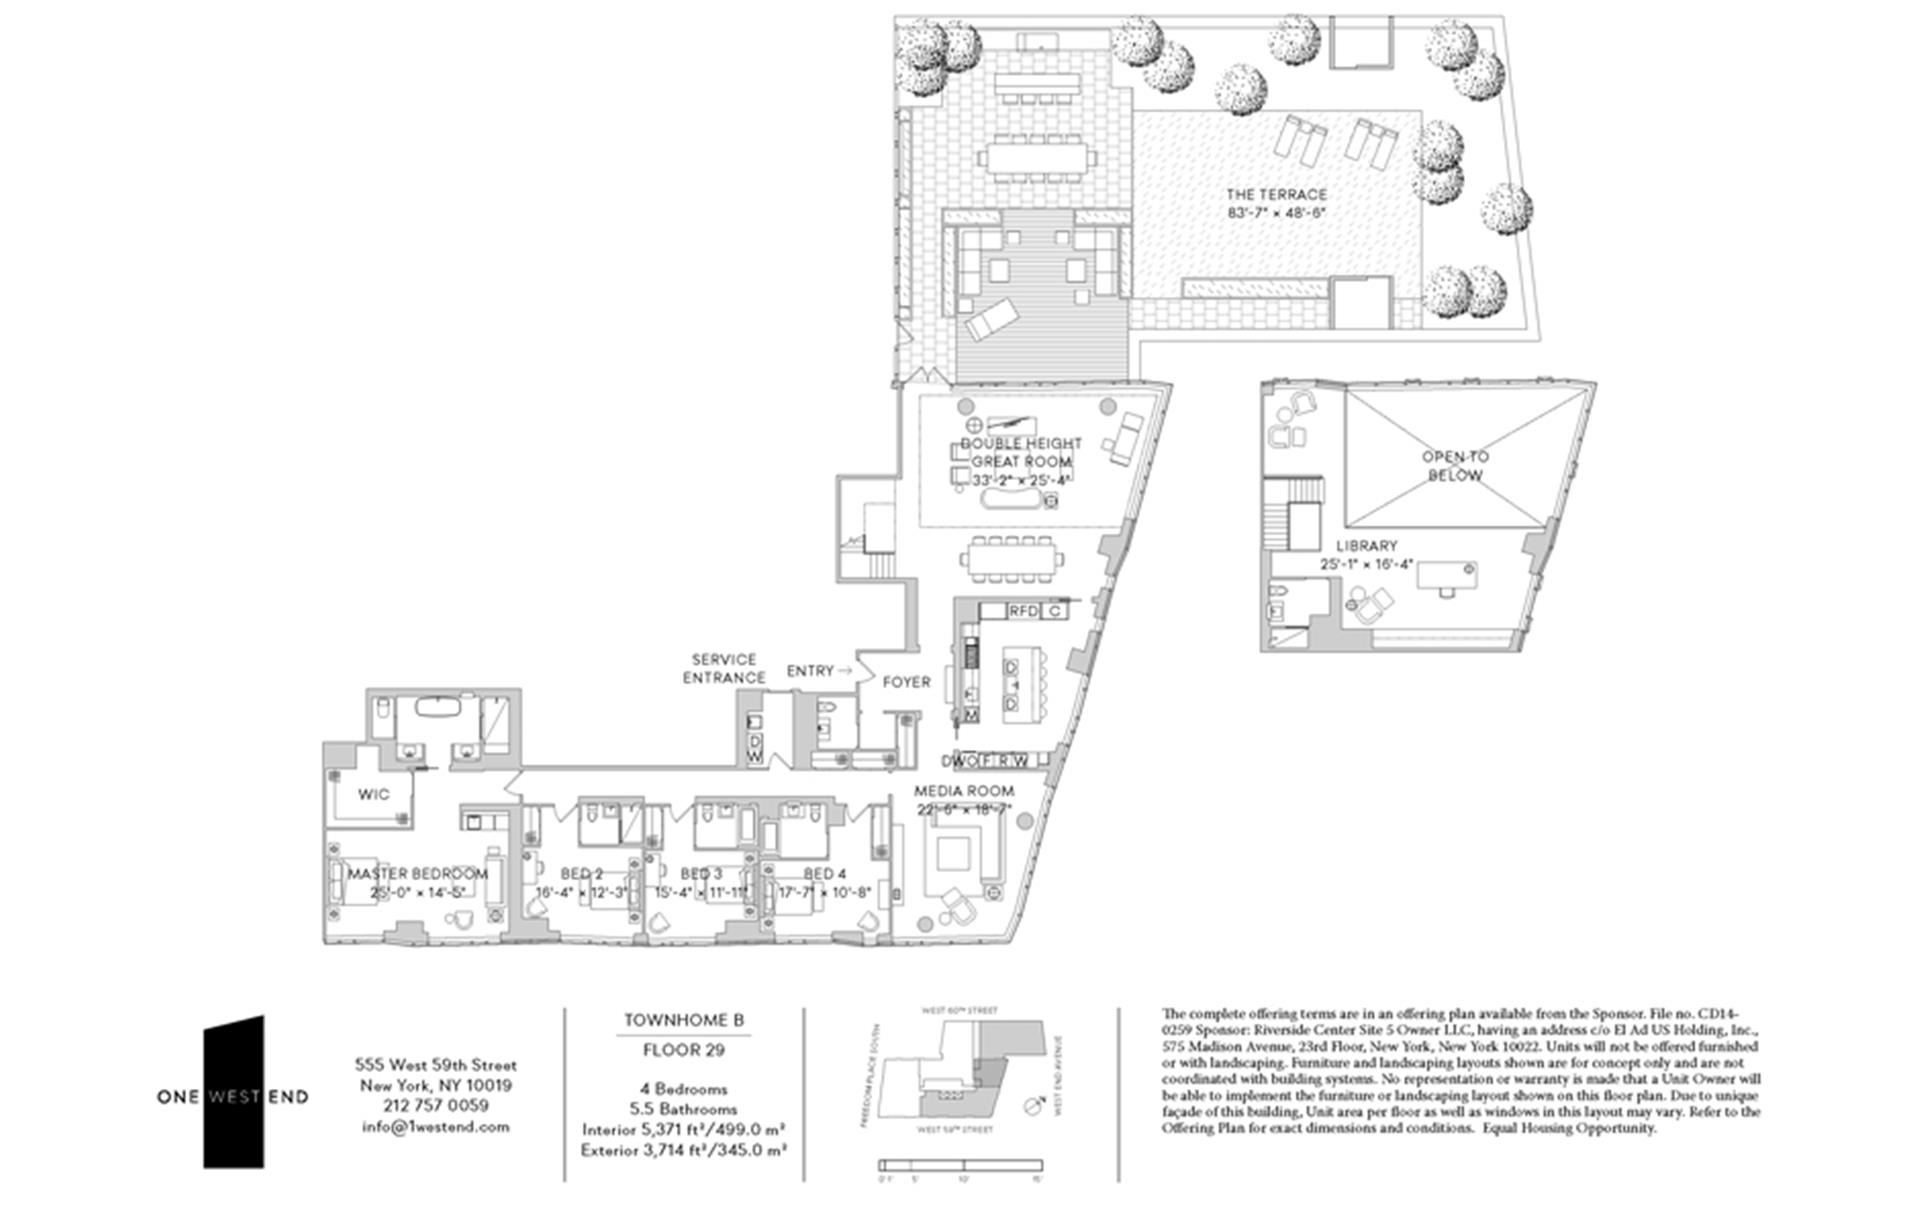 Floor plan of One West End, 1 West End Avenue, 29B - Upper West Side, New York